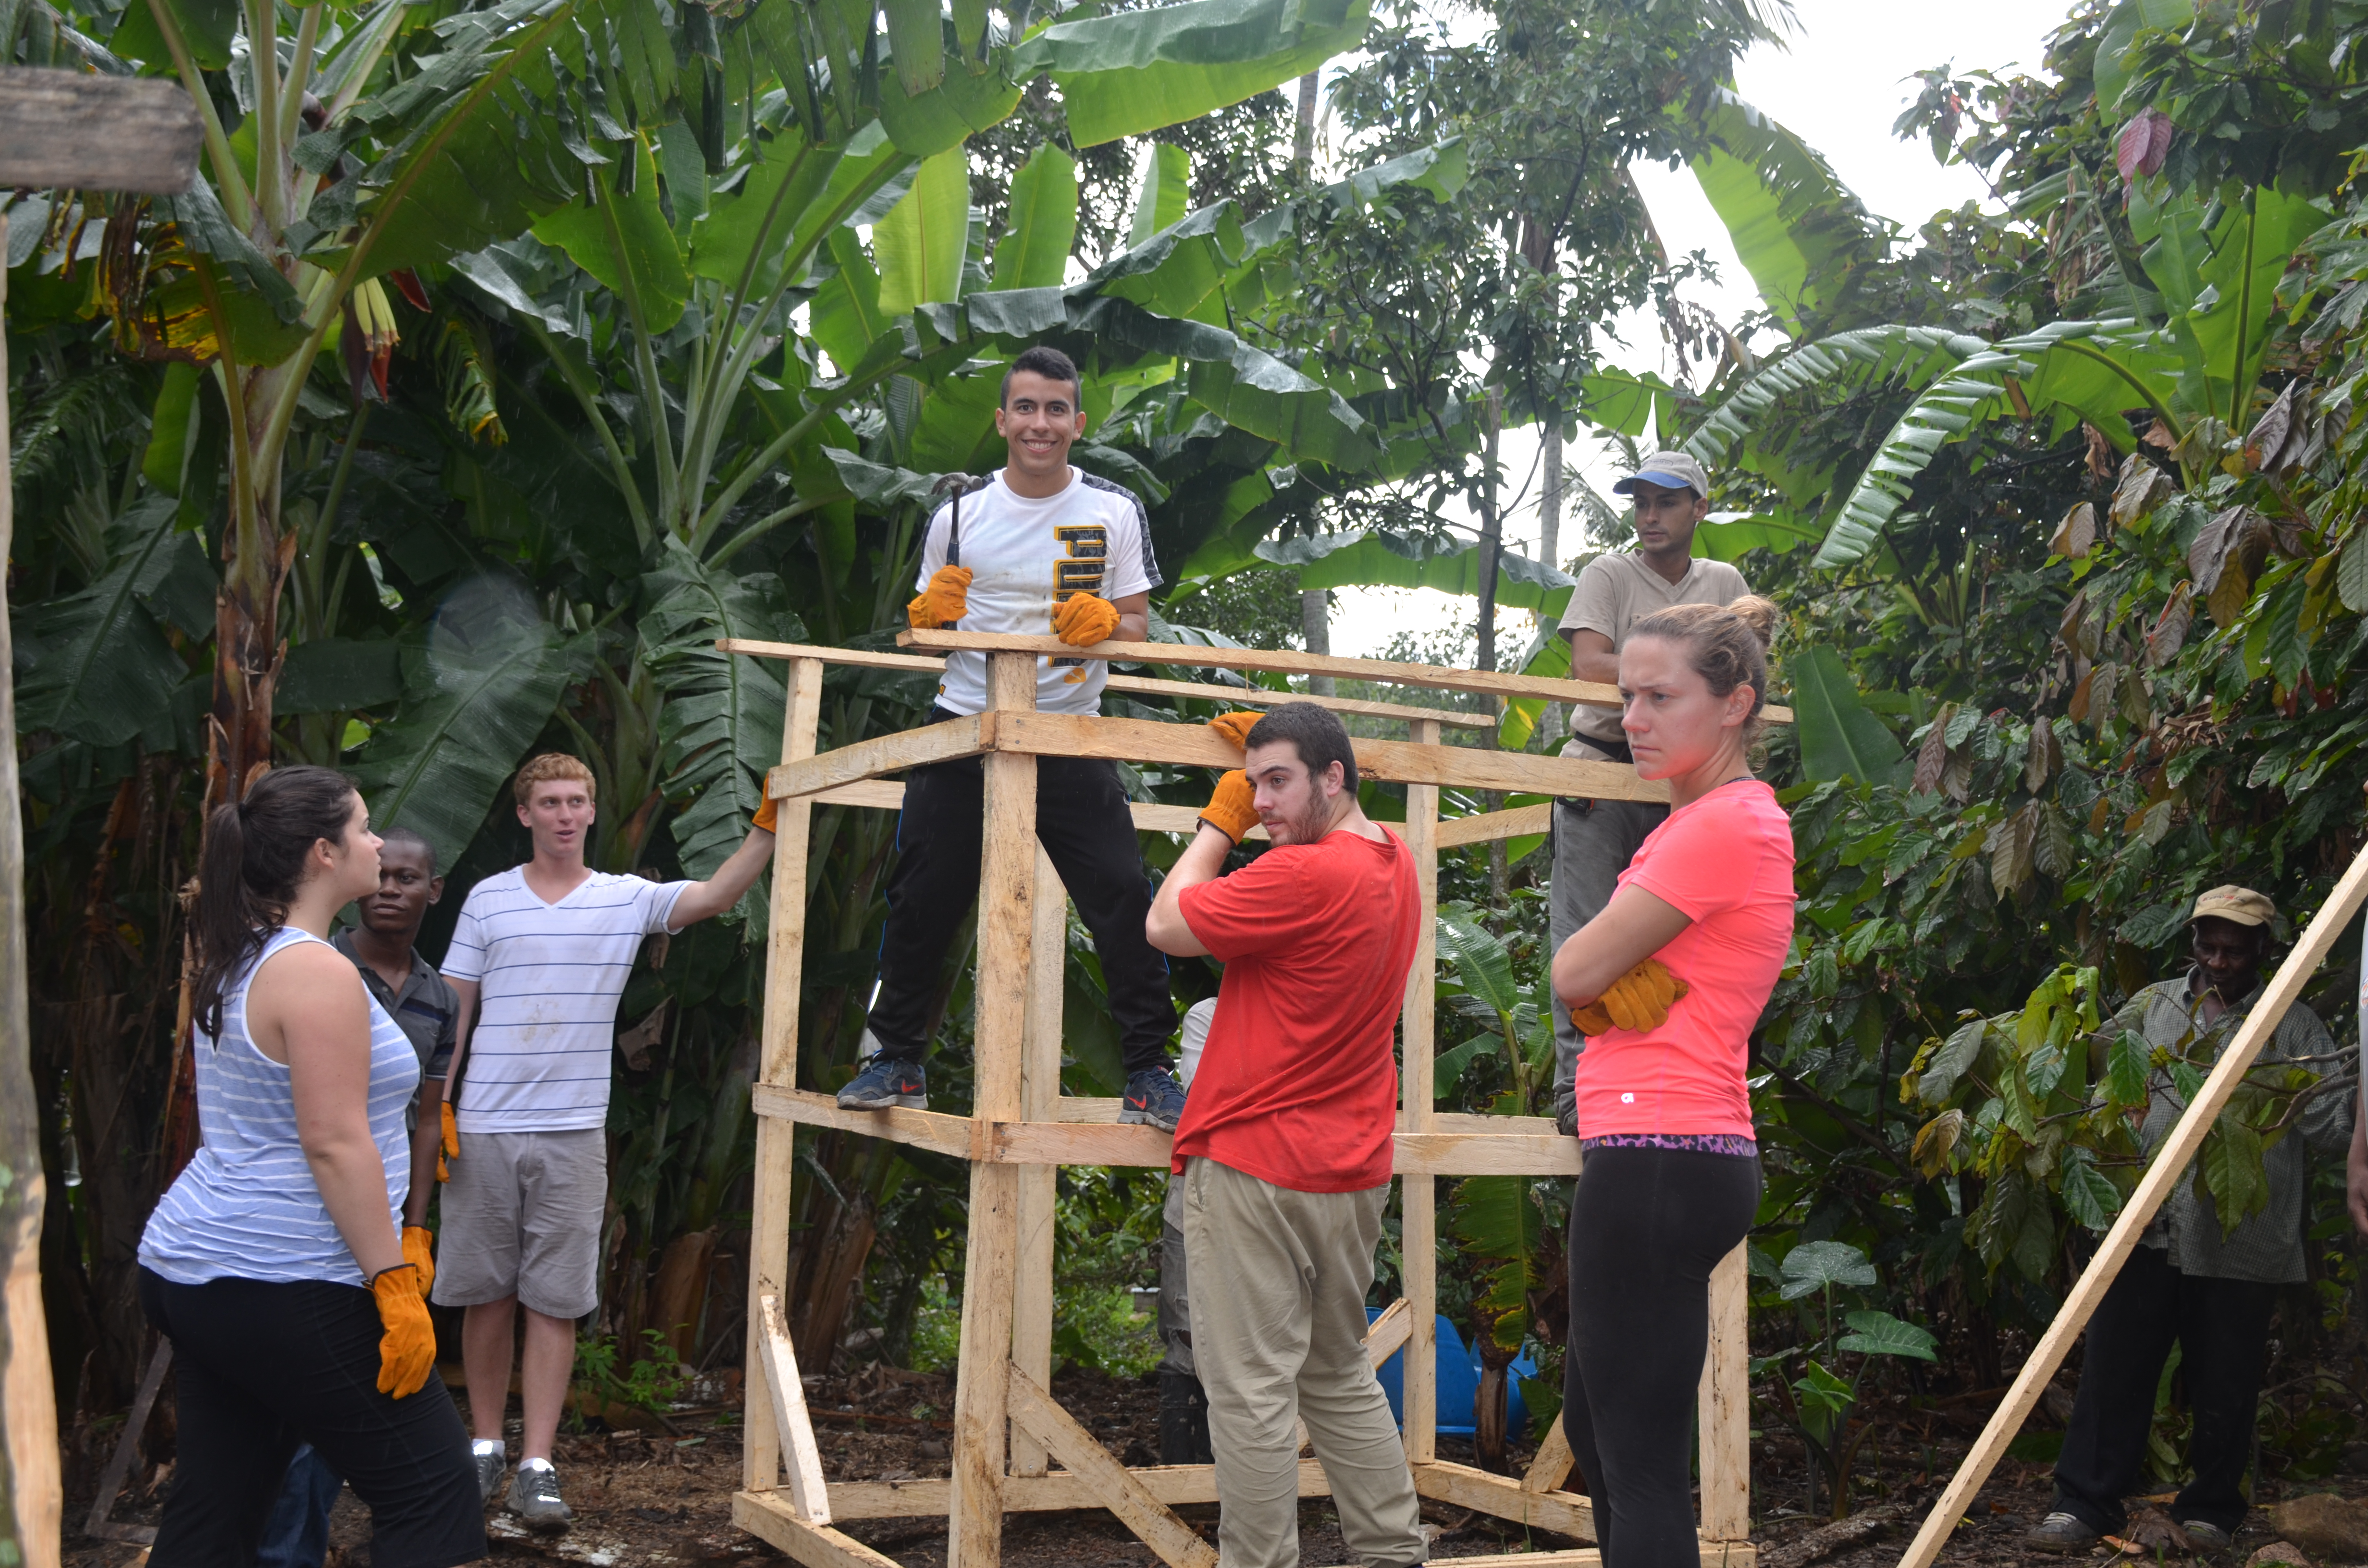 Six students study abroad in the Dominican Republic while also giving back to the community. LU Photos.